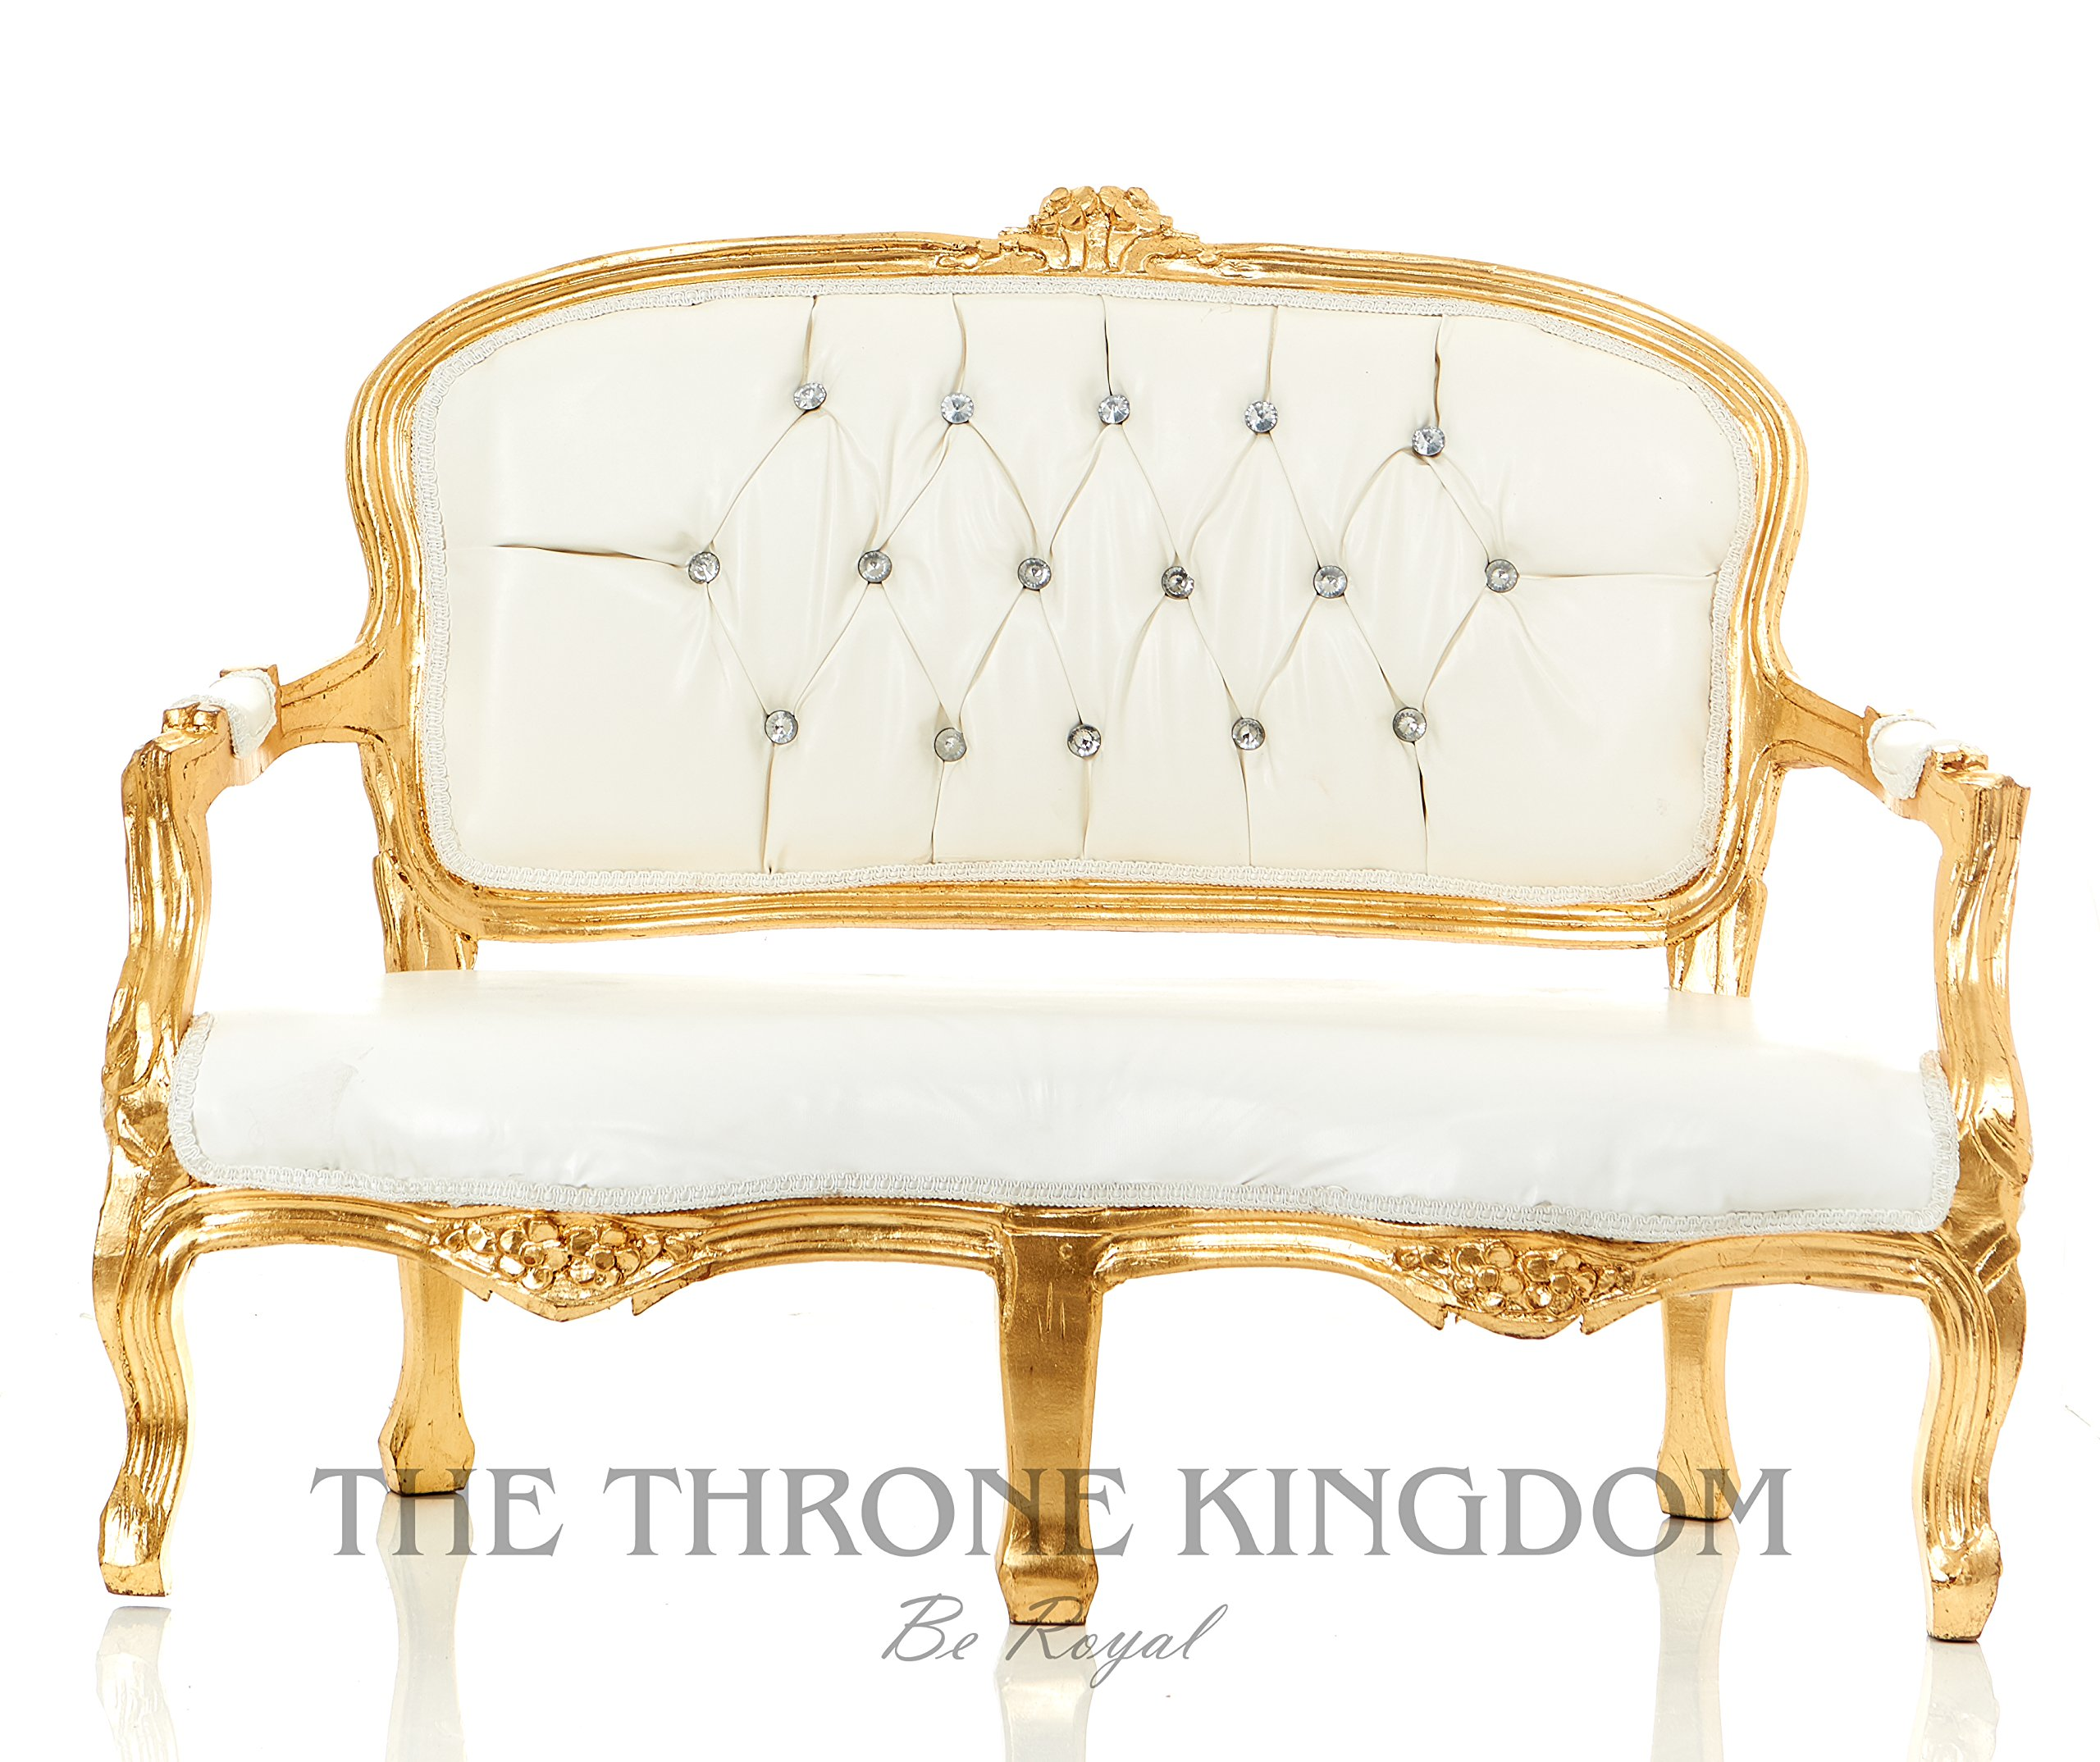 Mini Baby Victoria Love Seat/ Party Bench For Kids or Pets Photo Props White with Gold Leaf by Throne Kingdom